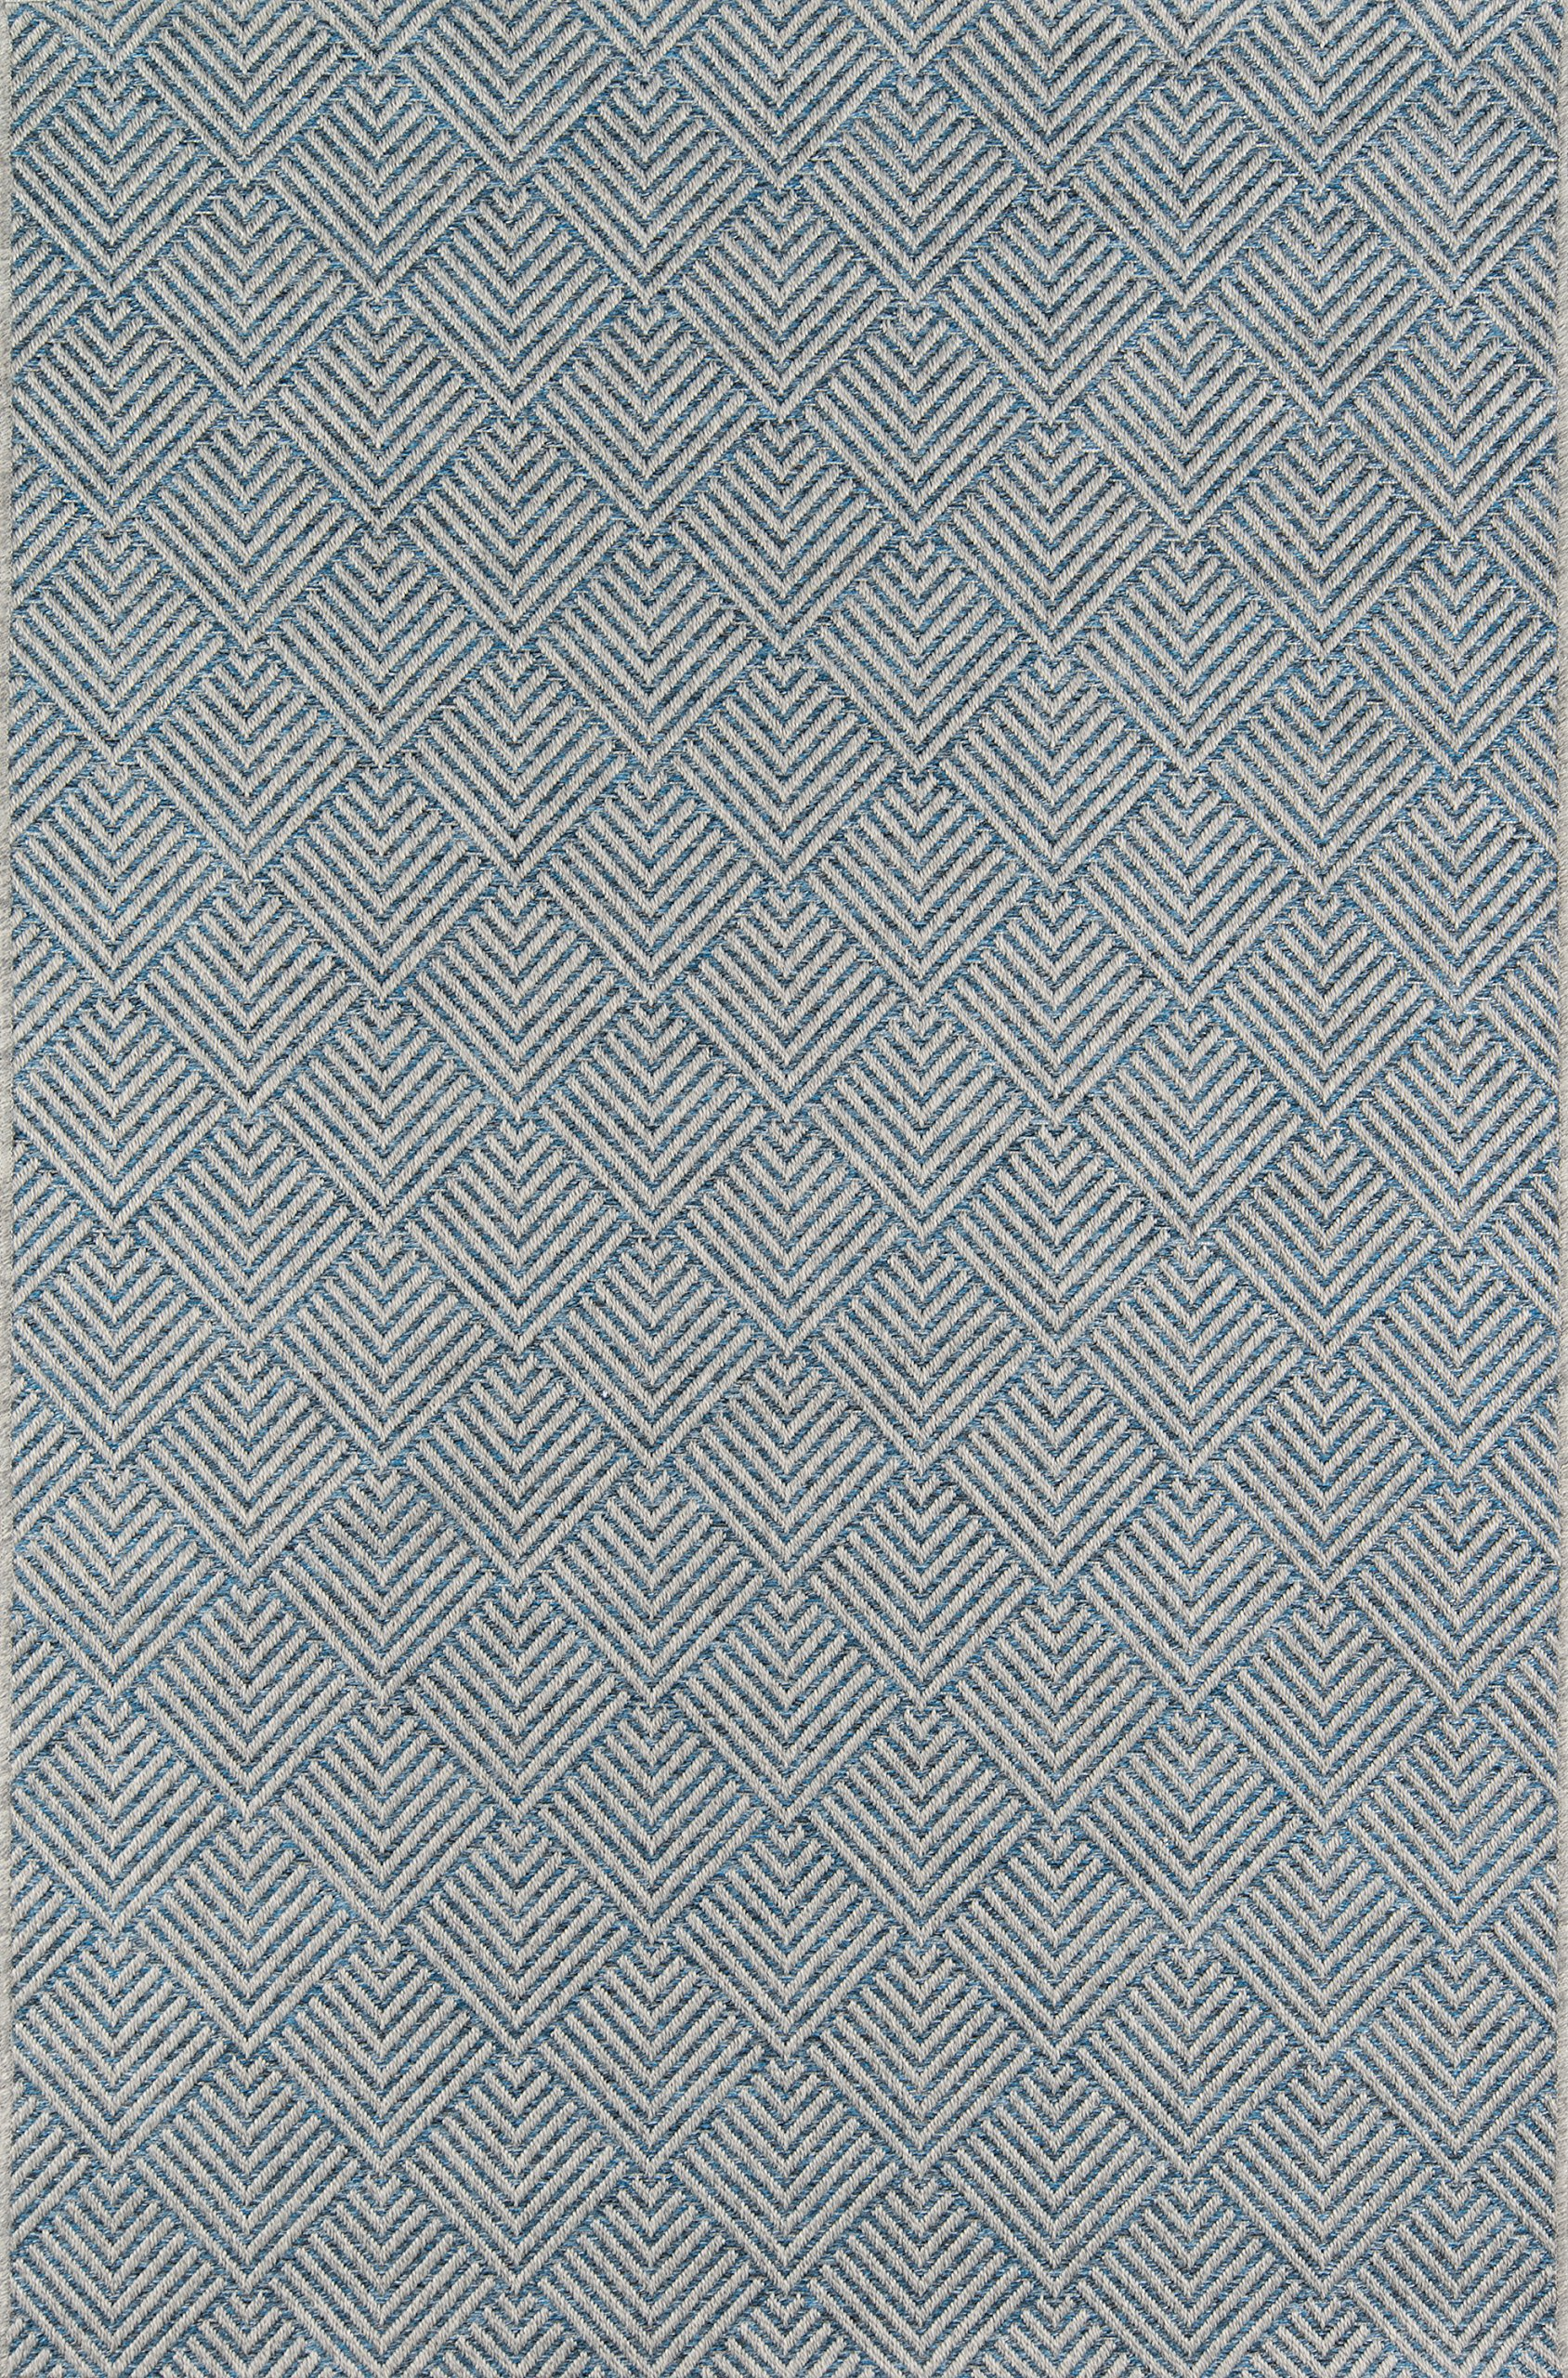 Nolita Rugs Tahla Polypropylene Indoor Outdoor Rug 5' X 7'6